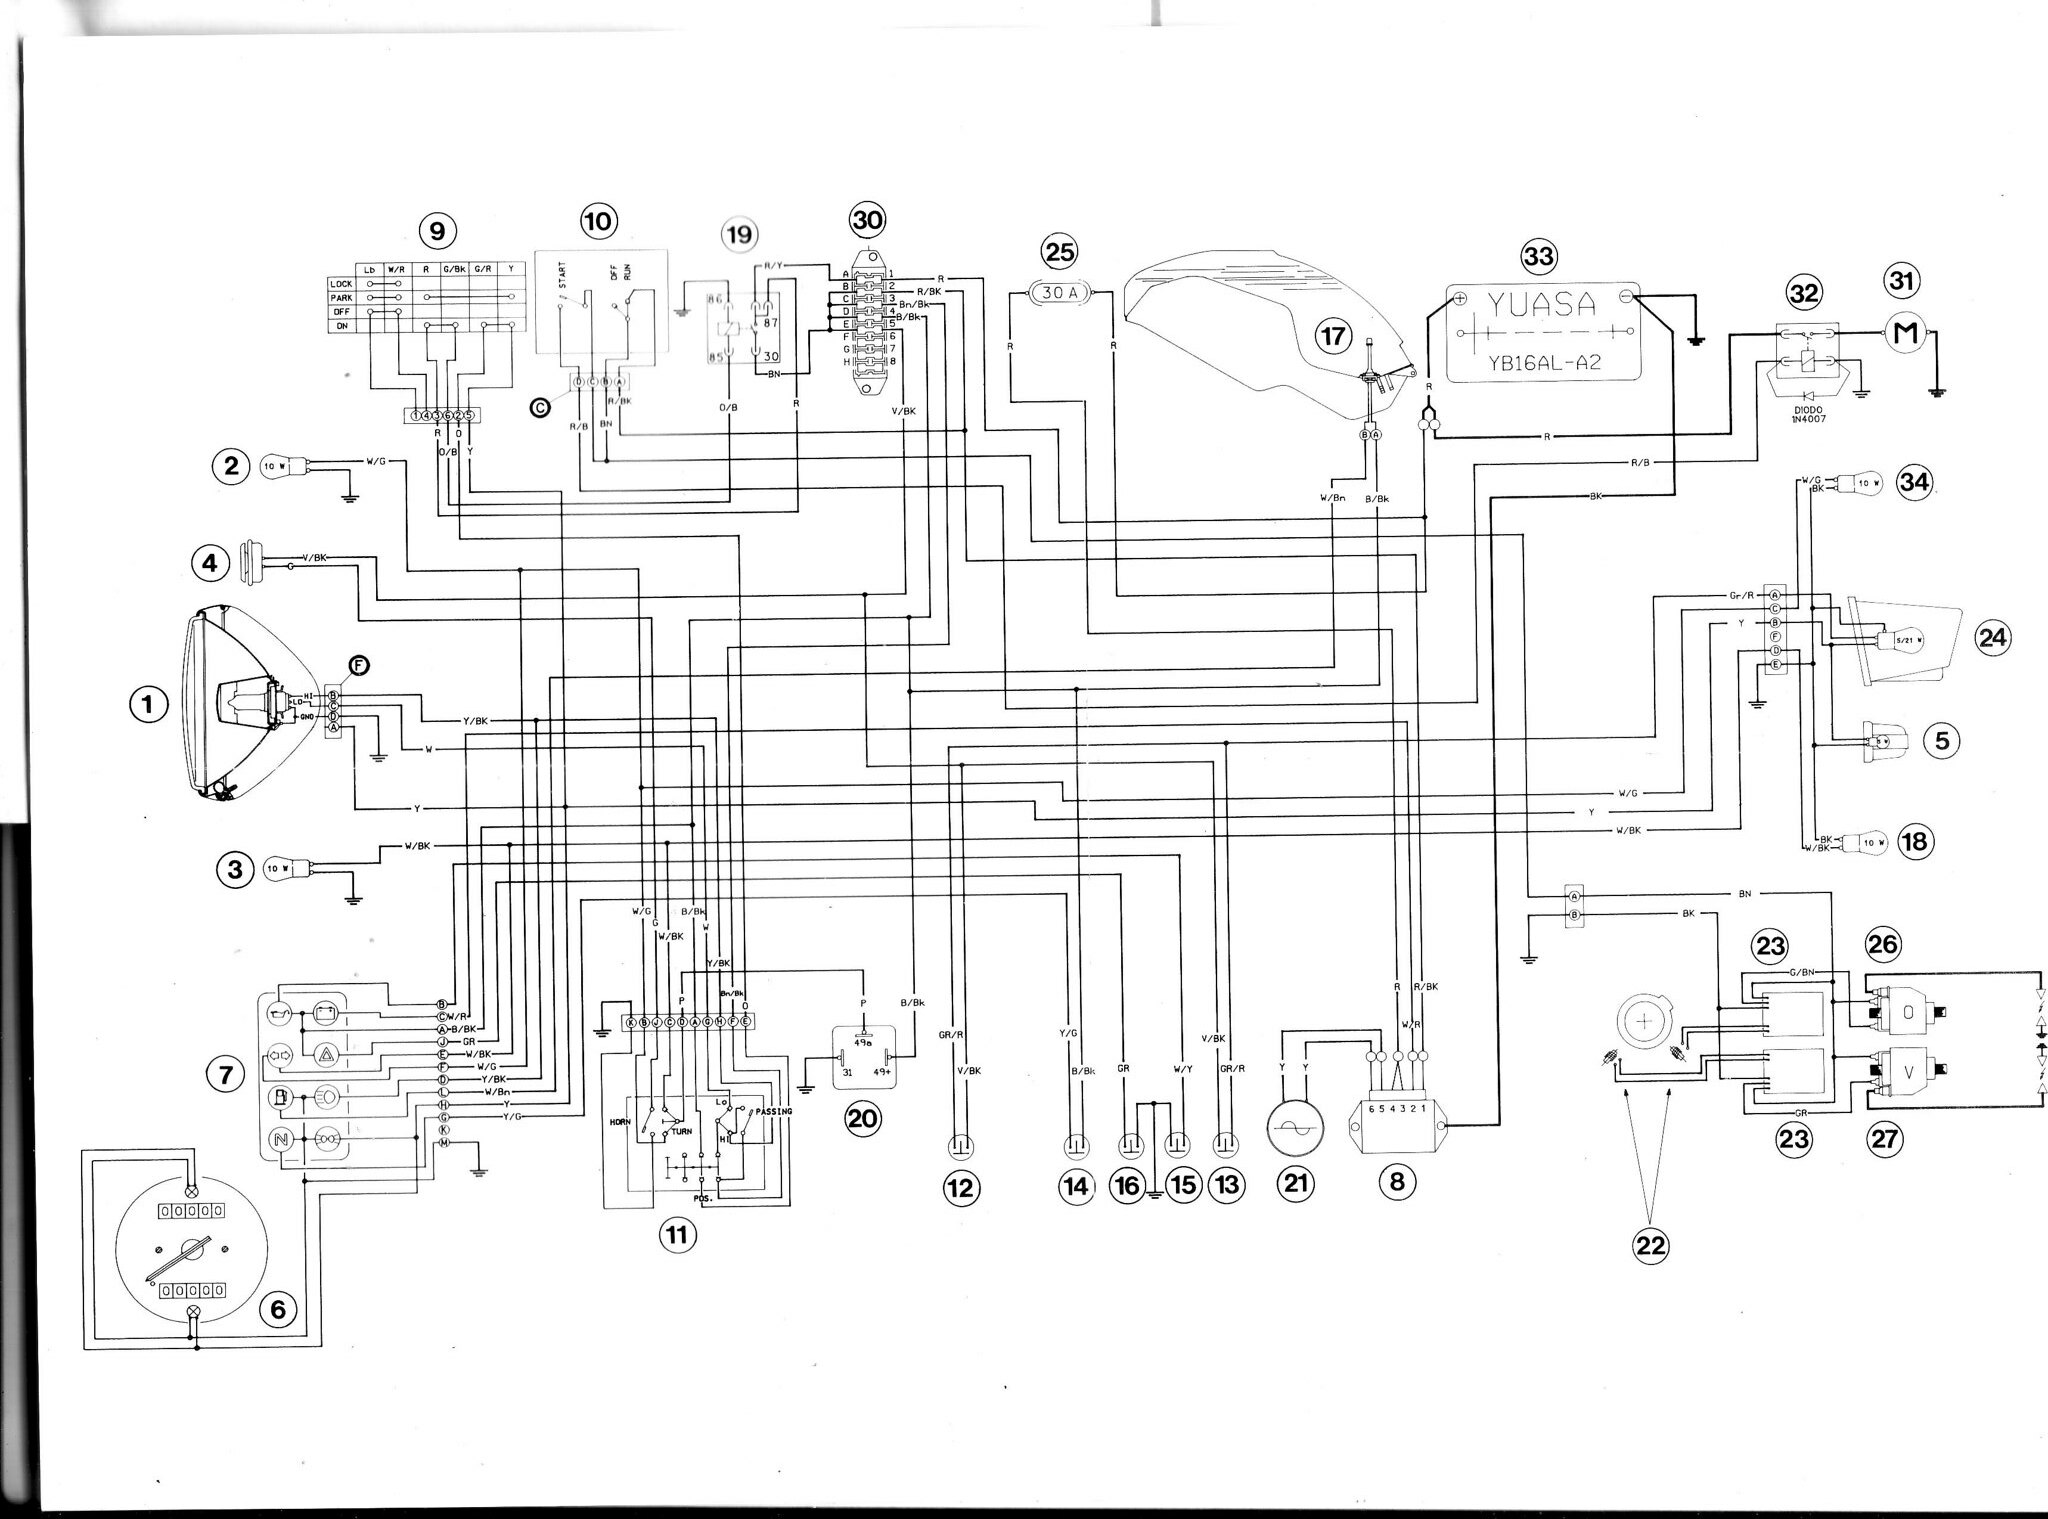 ducati 999 fuel wiring diagram auto electrical wiring diagram u2022 rh 6weeks co uk